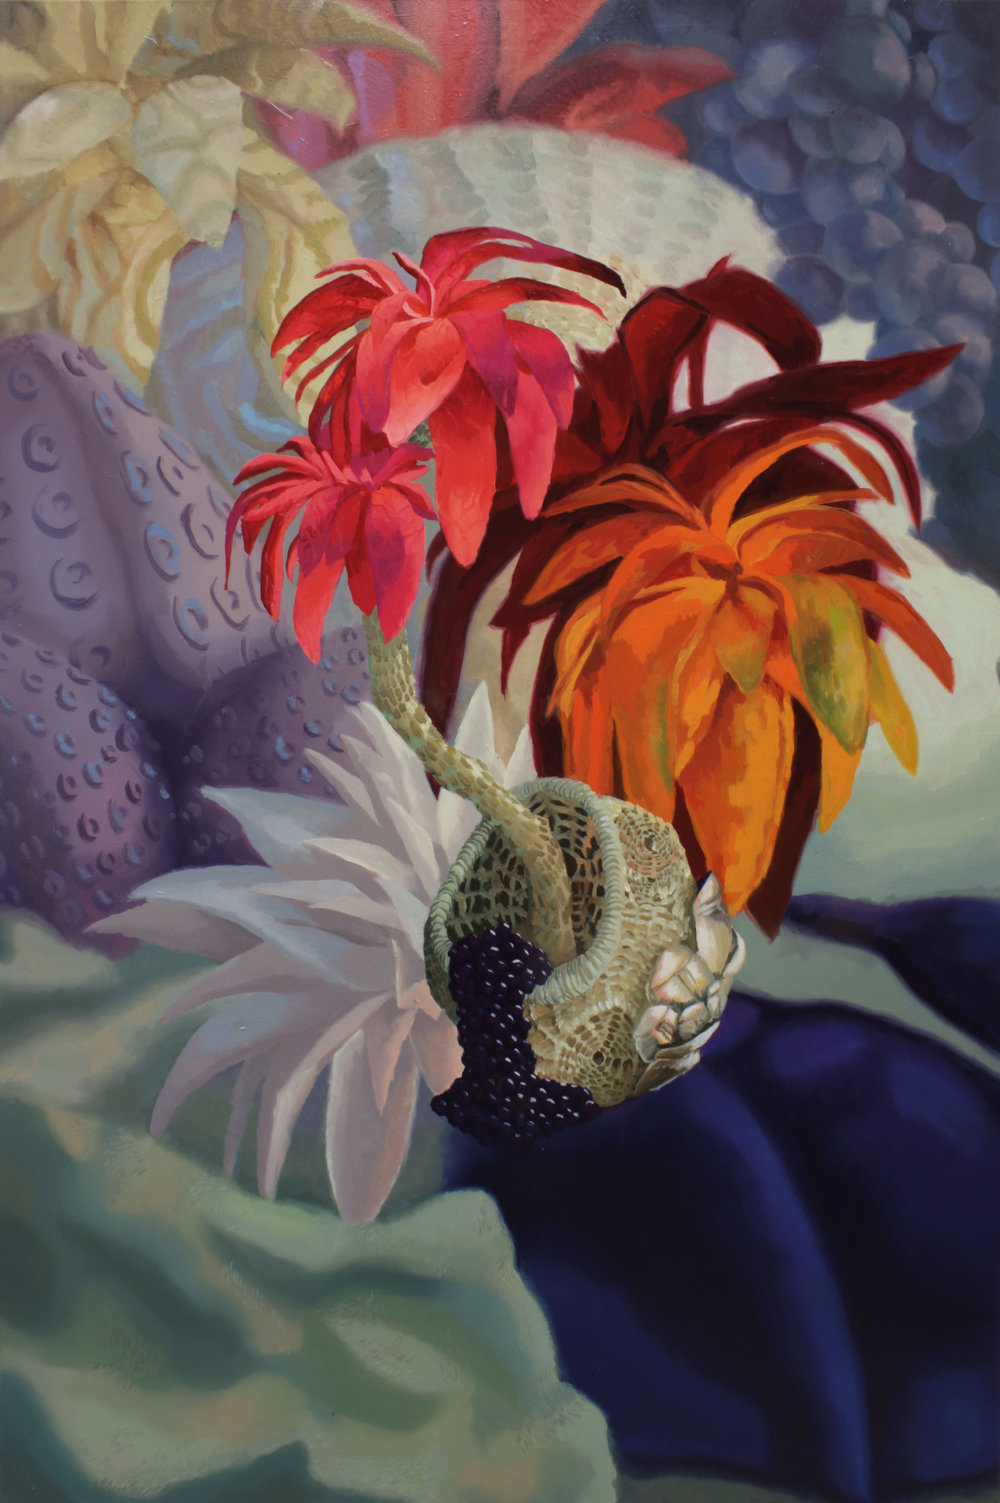 Mandragore's fruits  - 2018 - Oil on canvas-  60 x 100 cm